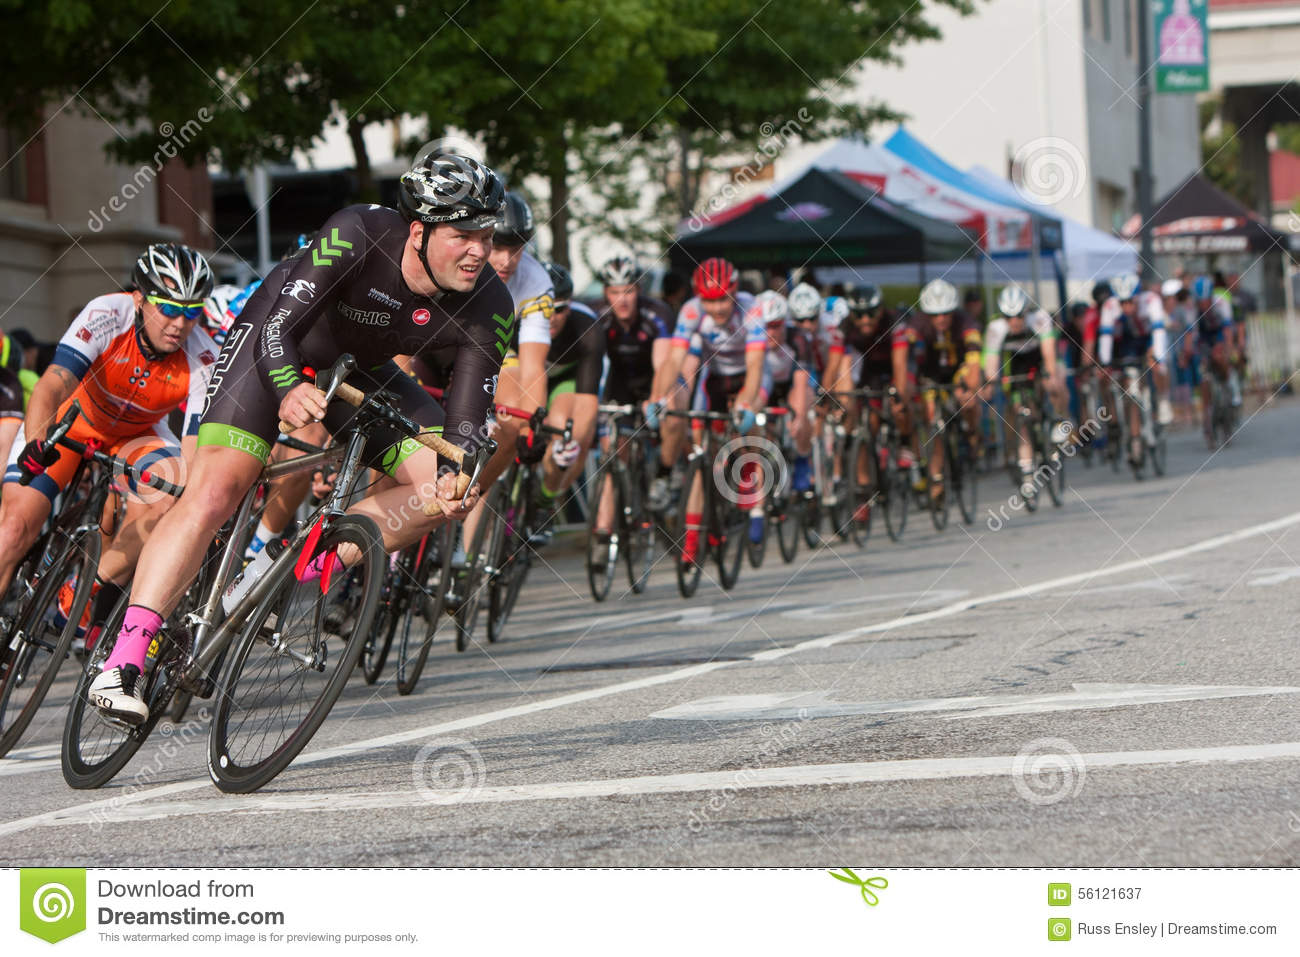 Top ten amateur cycling races